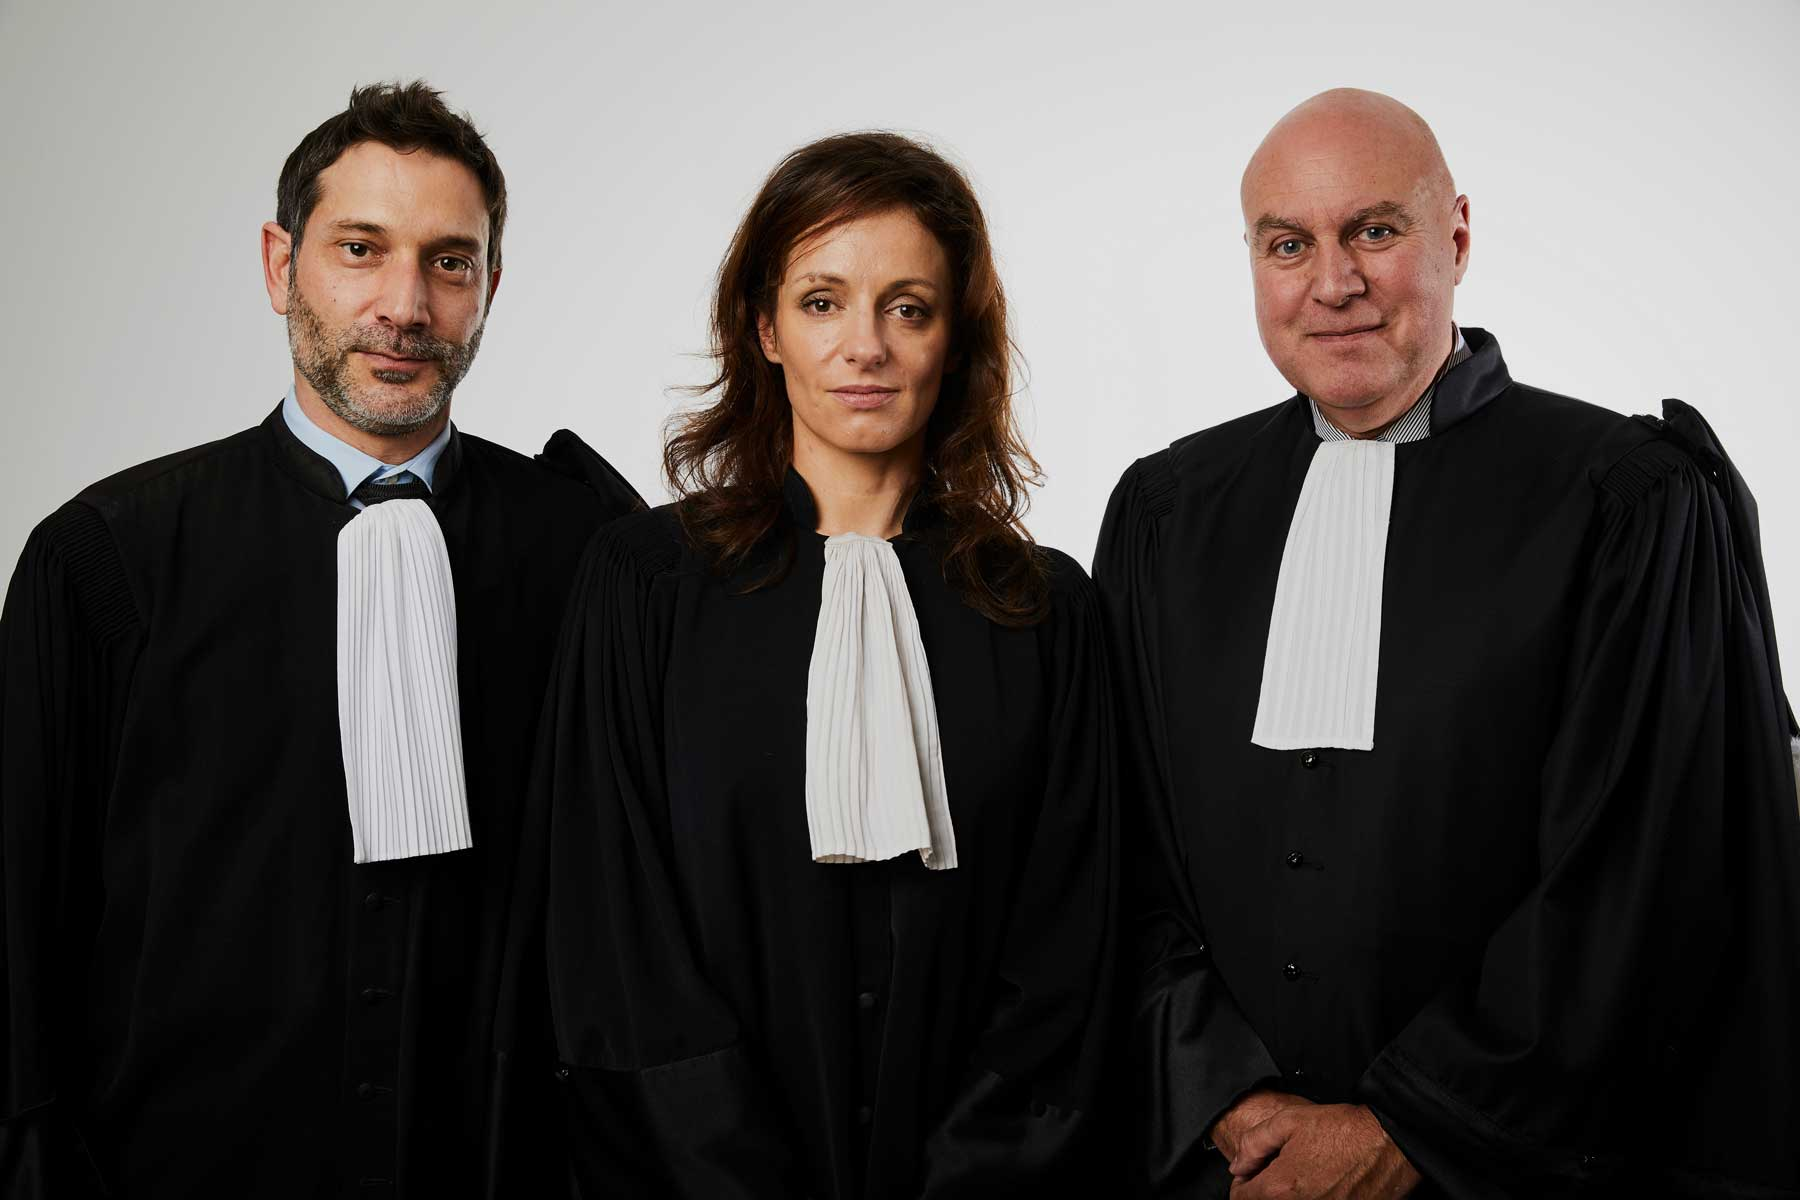 Portraits 3 avocats en robe Harmonia Juris Antibes